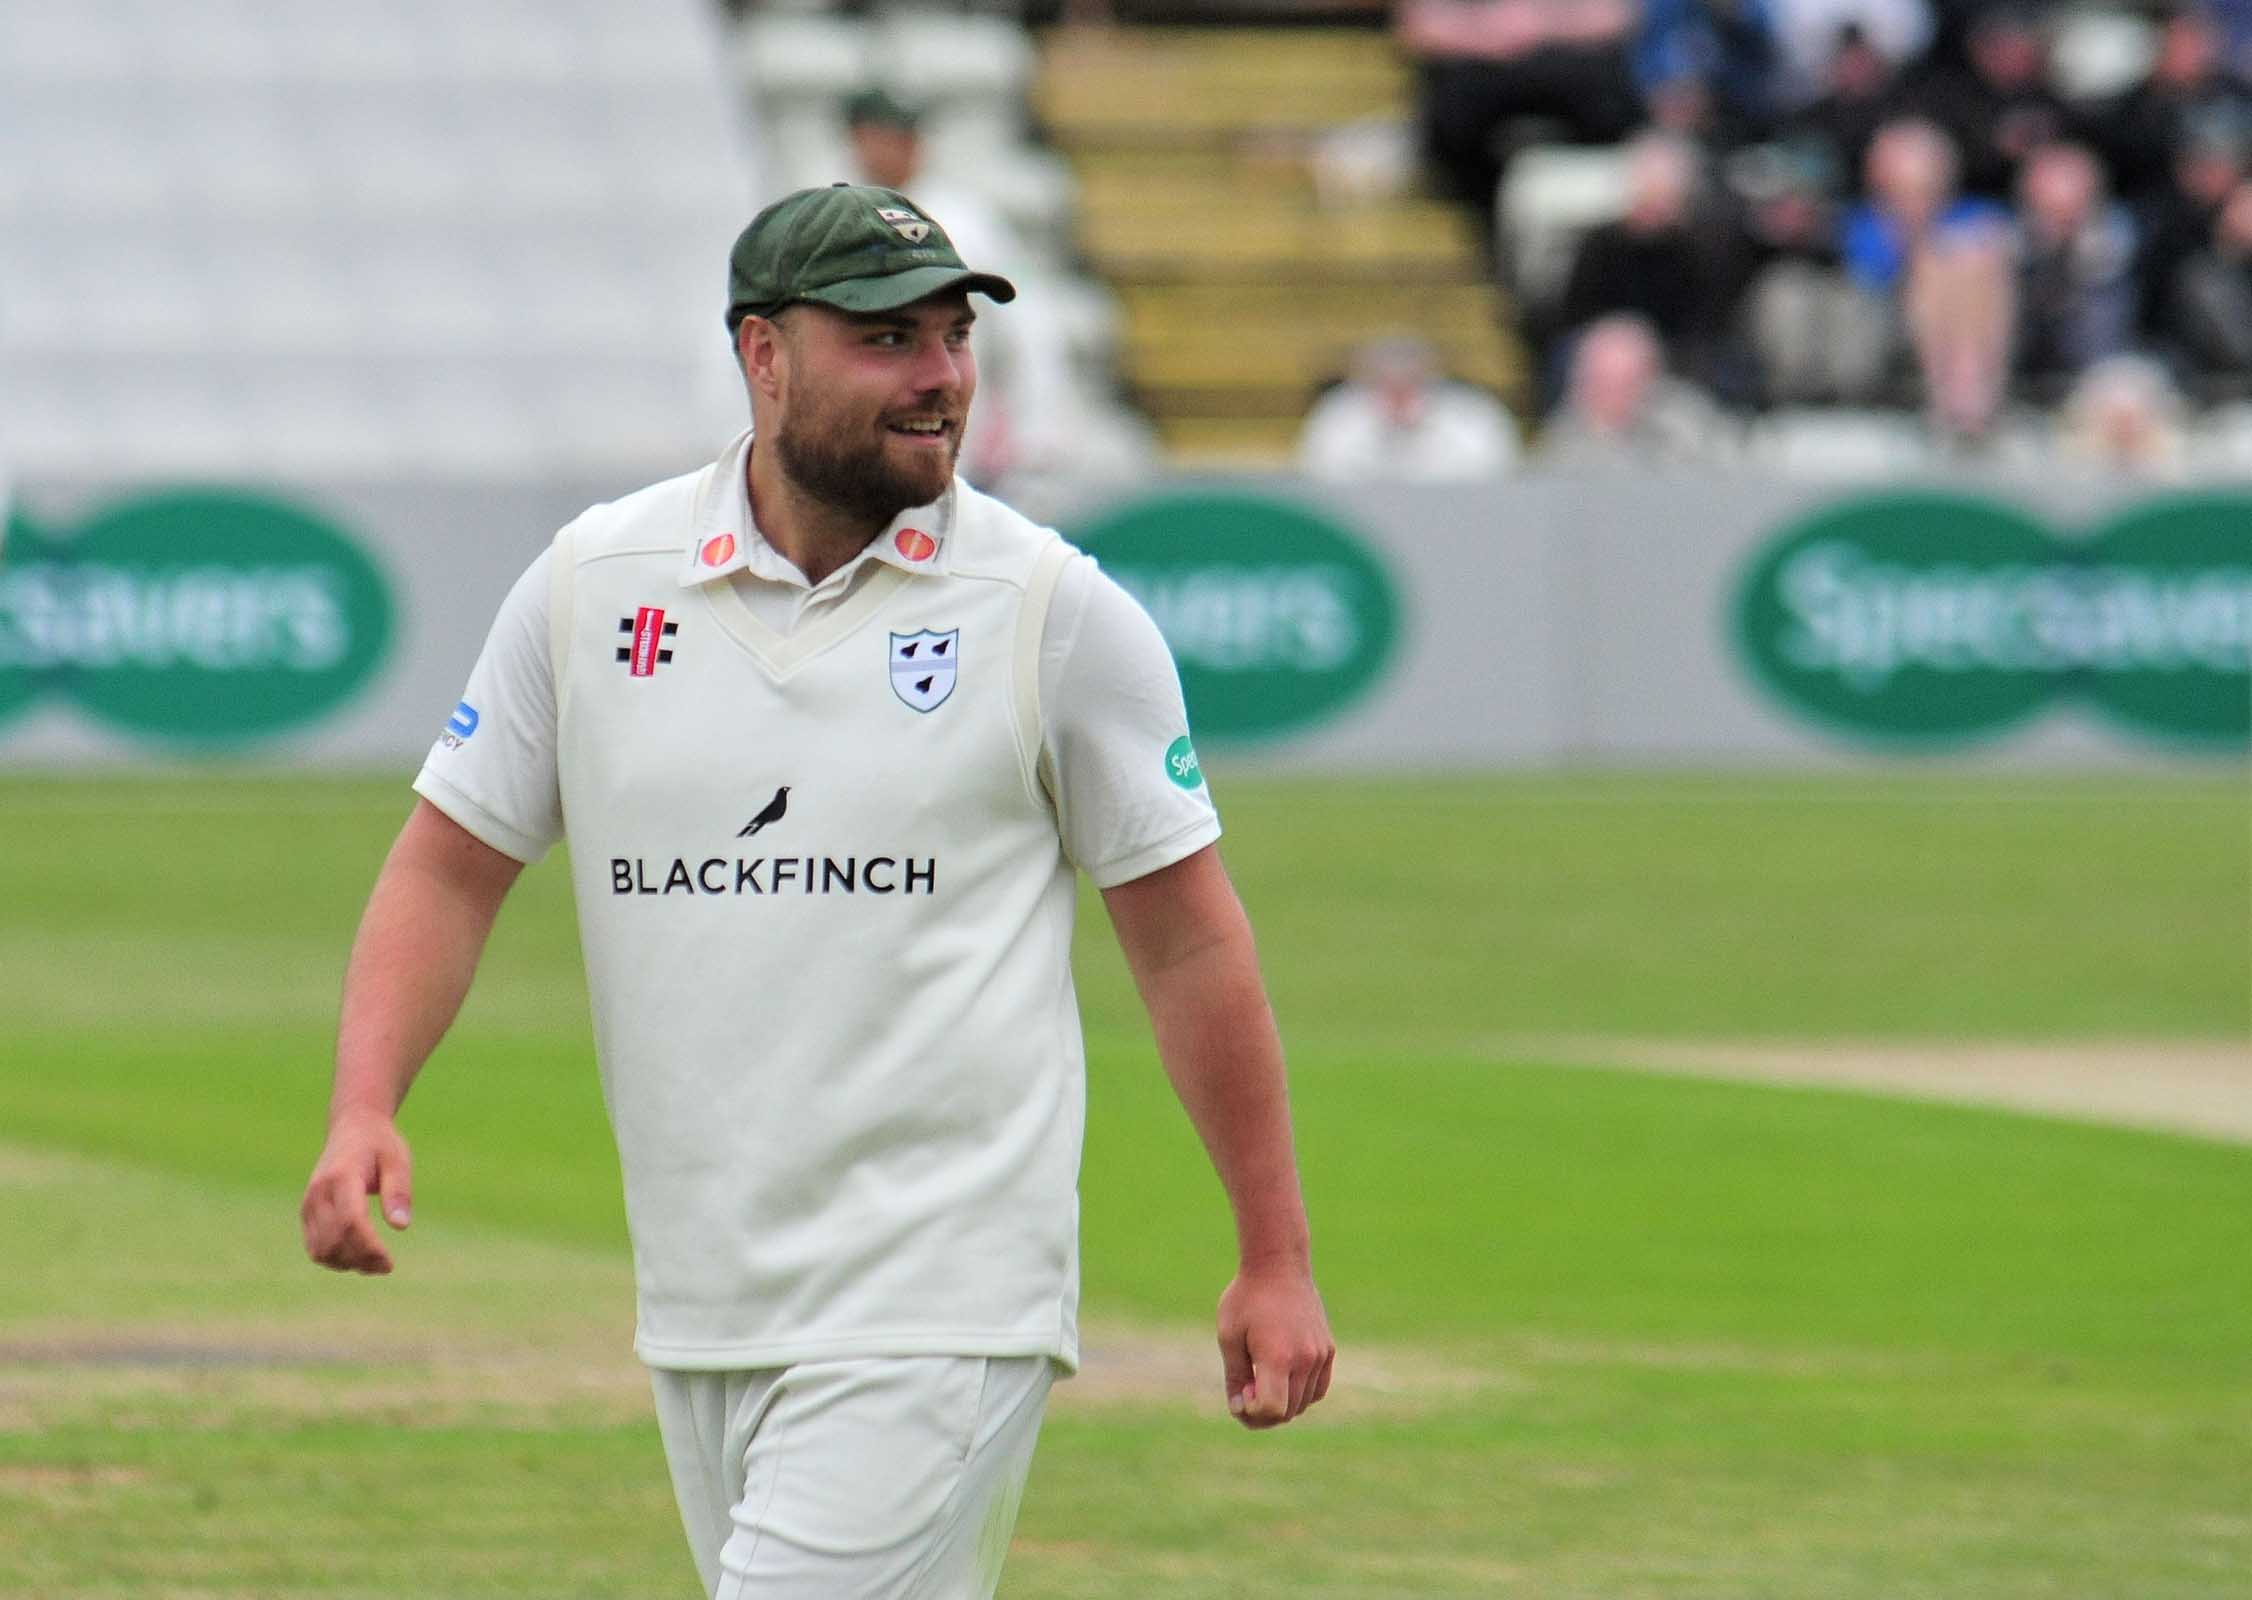 Worcestershire skipper Joe Leach is back in training following his injury. Picture: JONATHAN BARRY